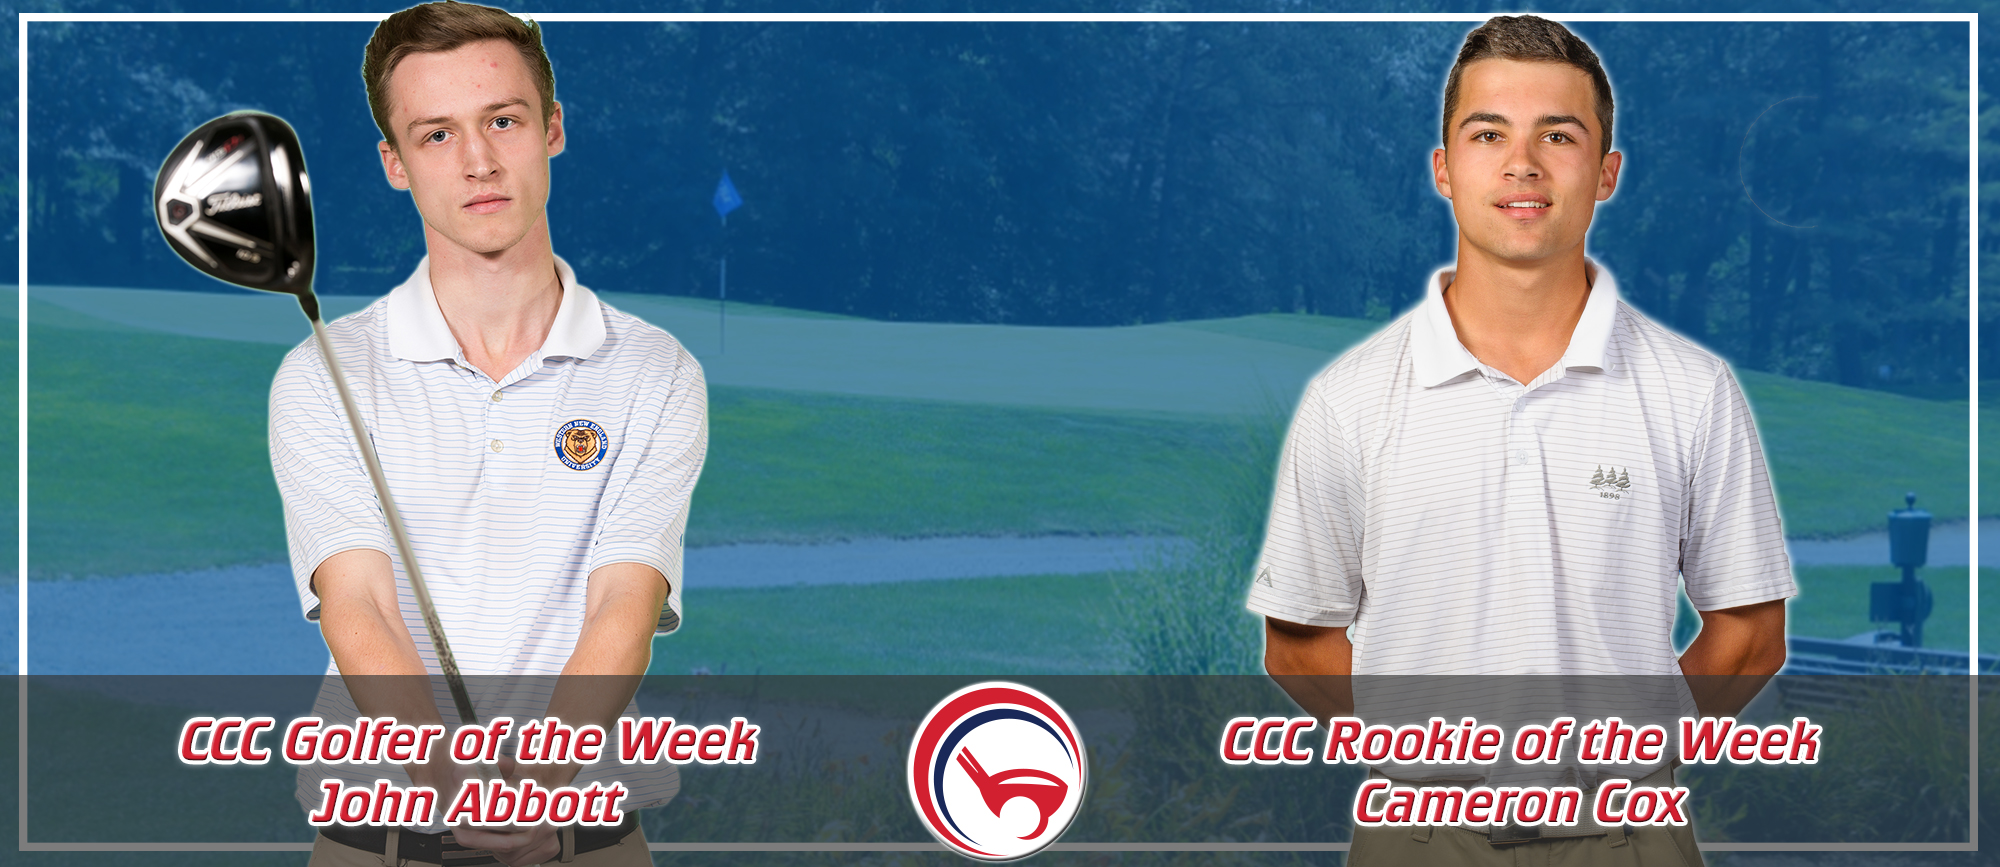 John Abbott & Cameron Cox Receive Weekly CCC Awards